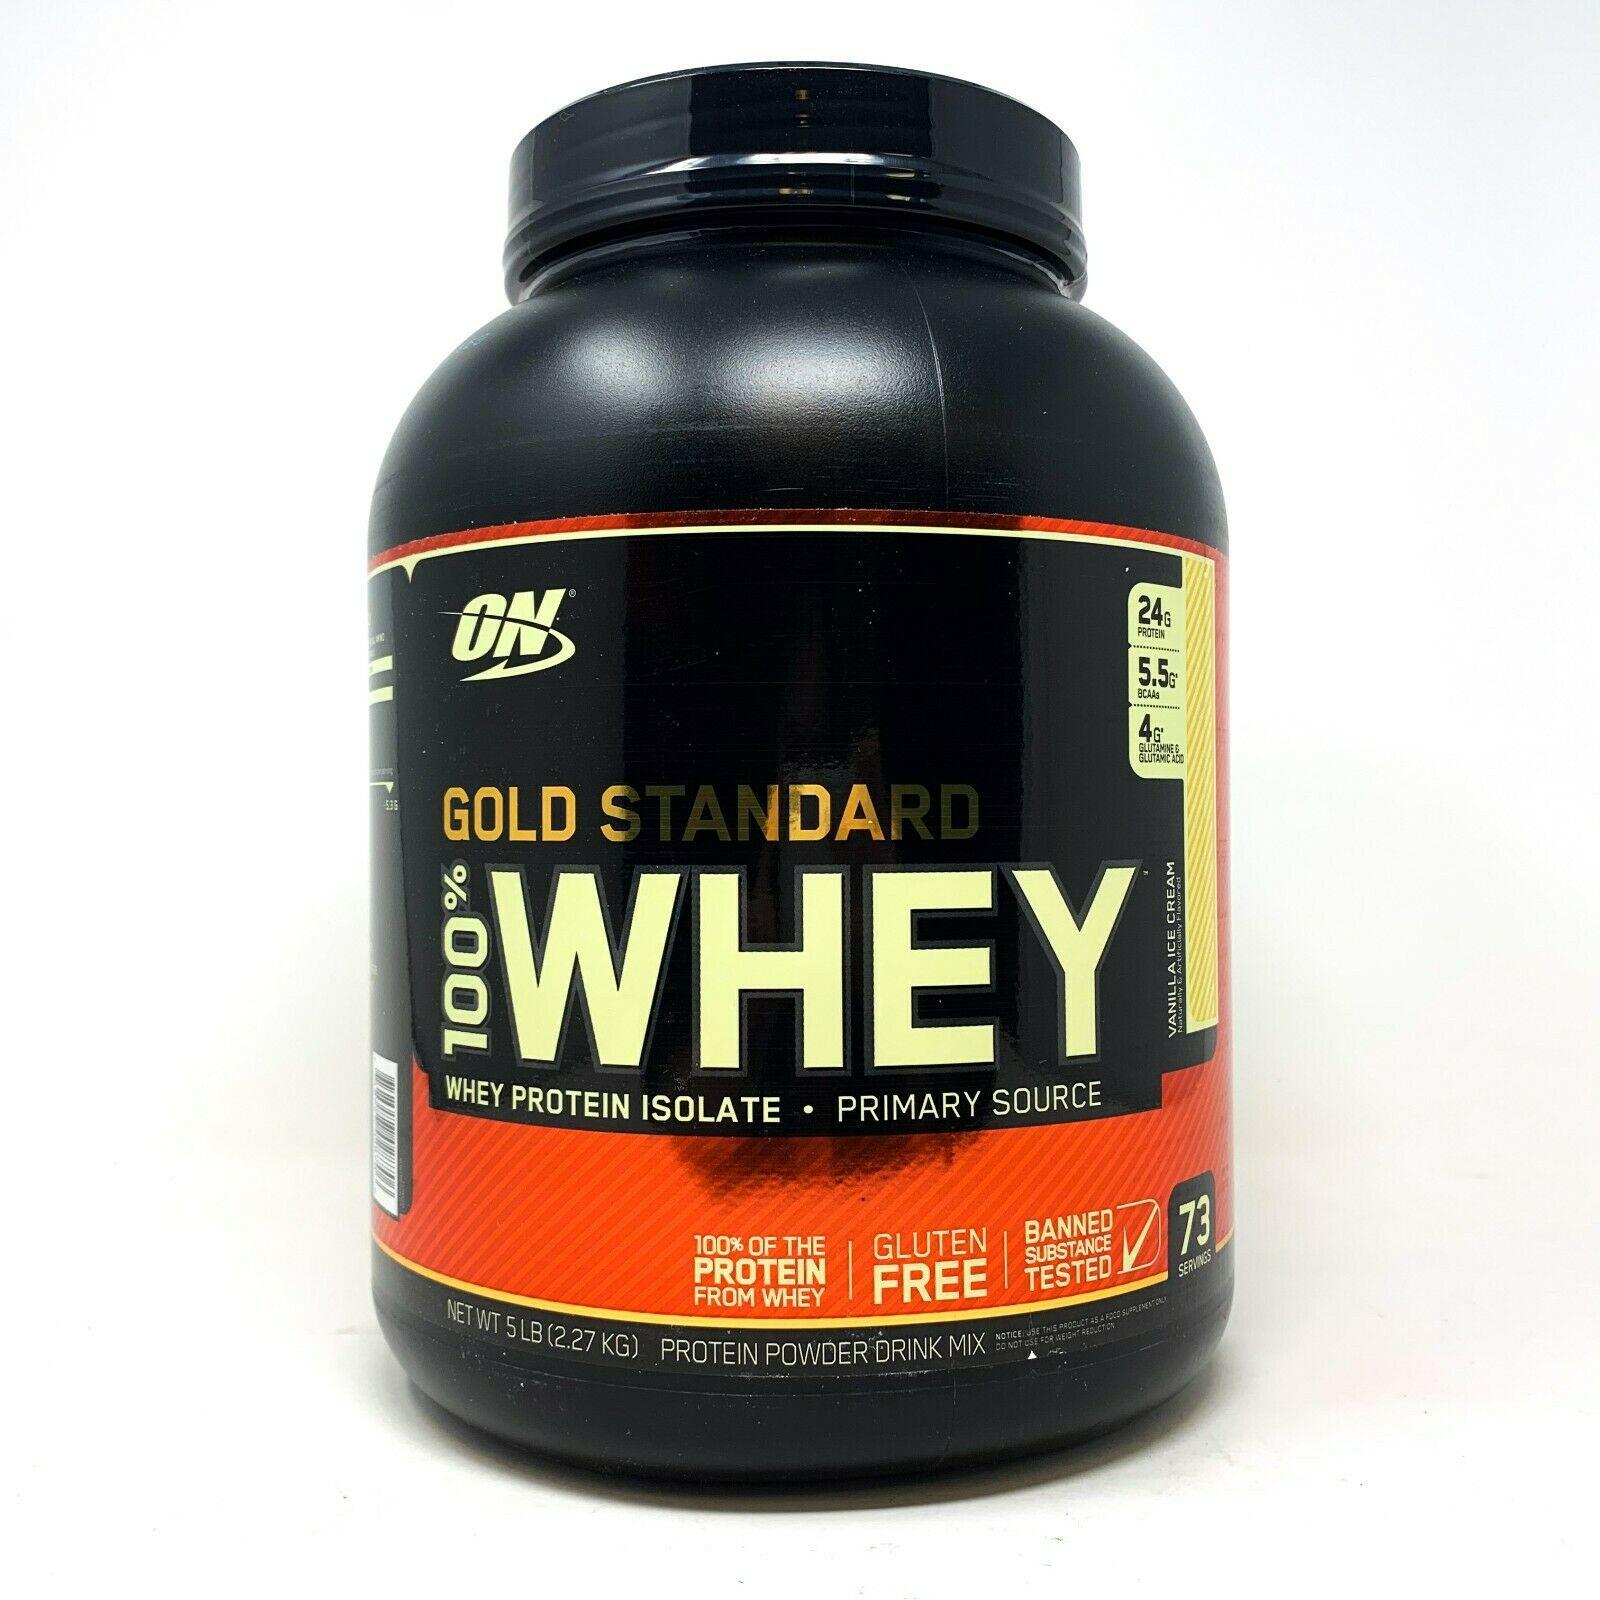 Optimum Nutrition Gold Standard Whey Protein Powder Muscle Building Supplements For Sale Online Ebay